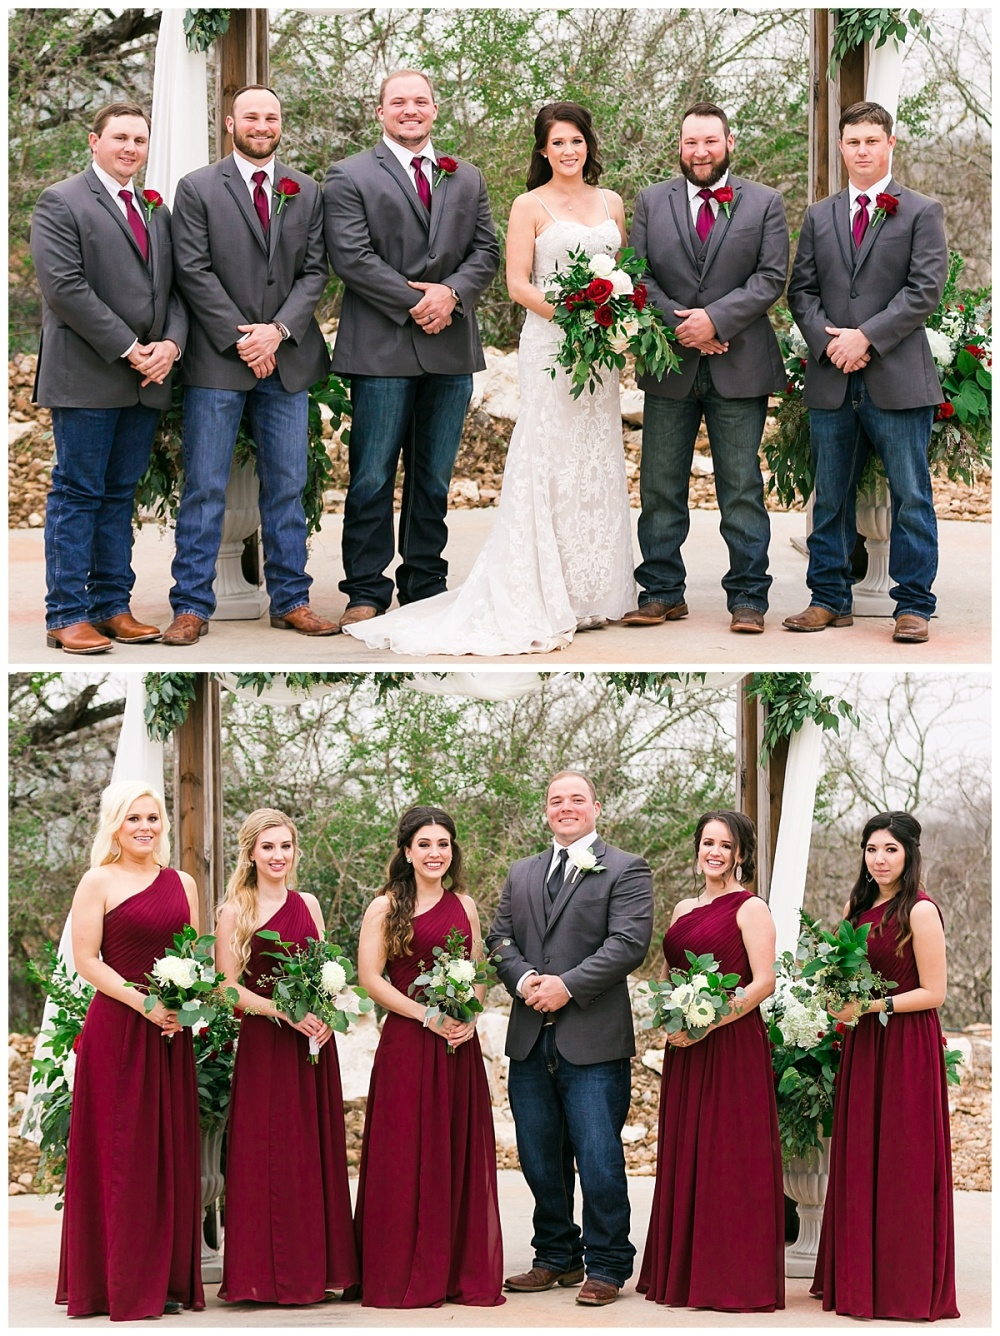 Carly-Barton-Photography-Geronimo-Oaks-Wedding-Venue-Texas-Hill-Country-Ronnie-Sarah_0107.jpg